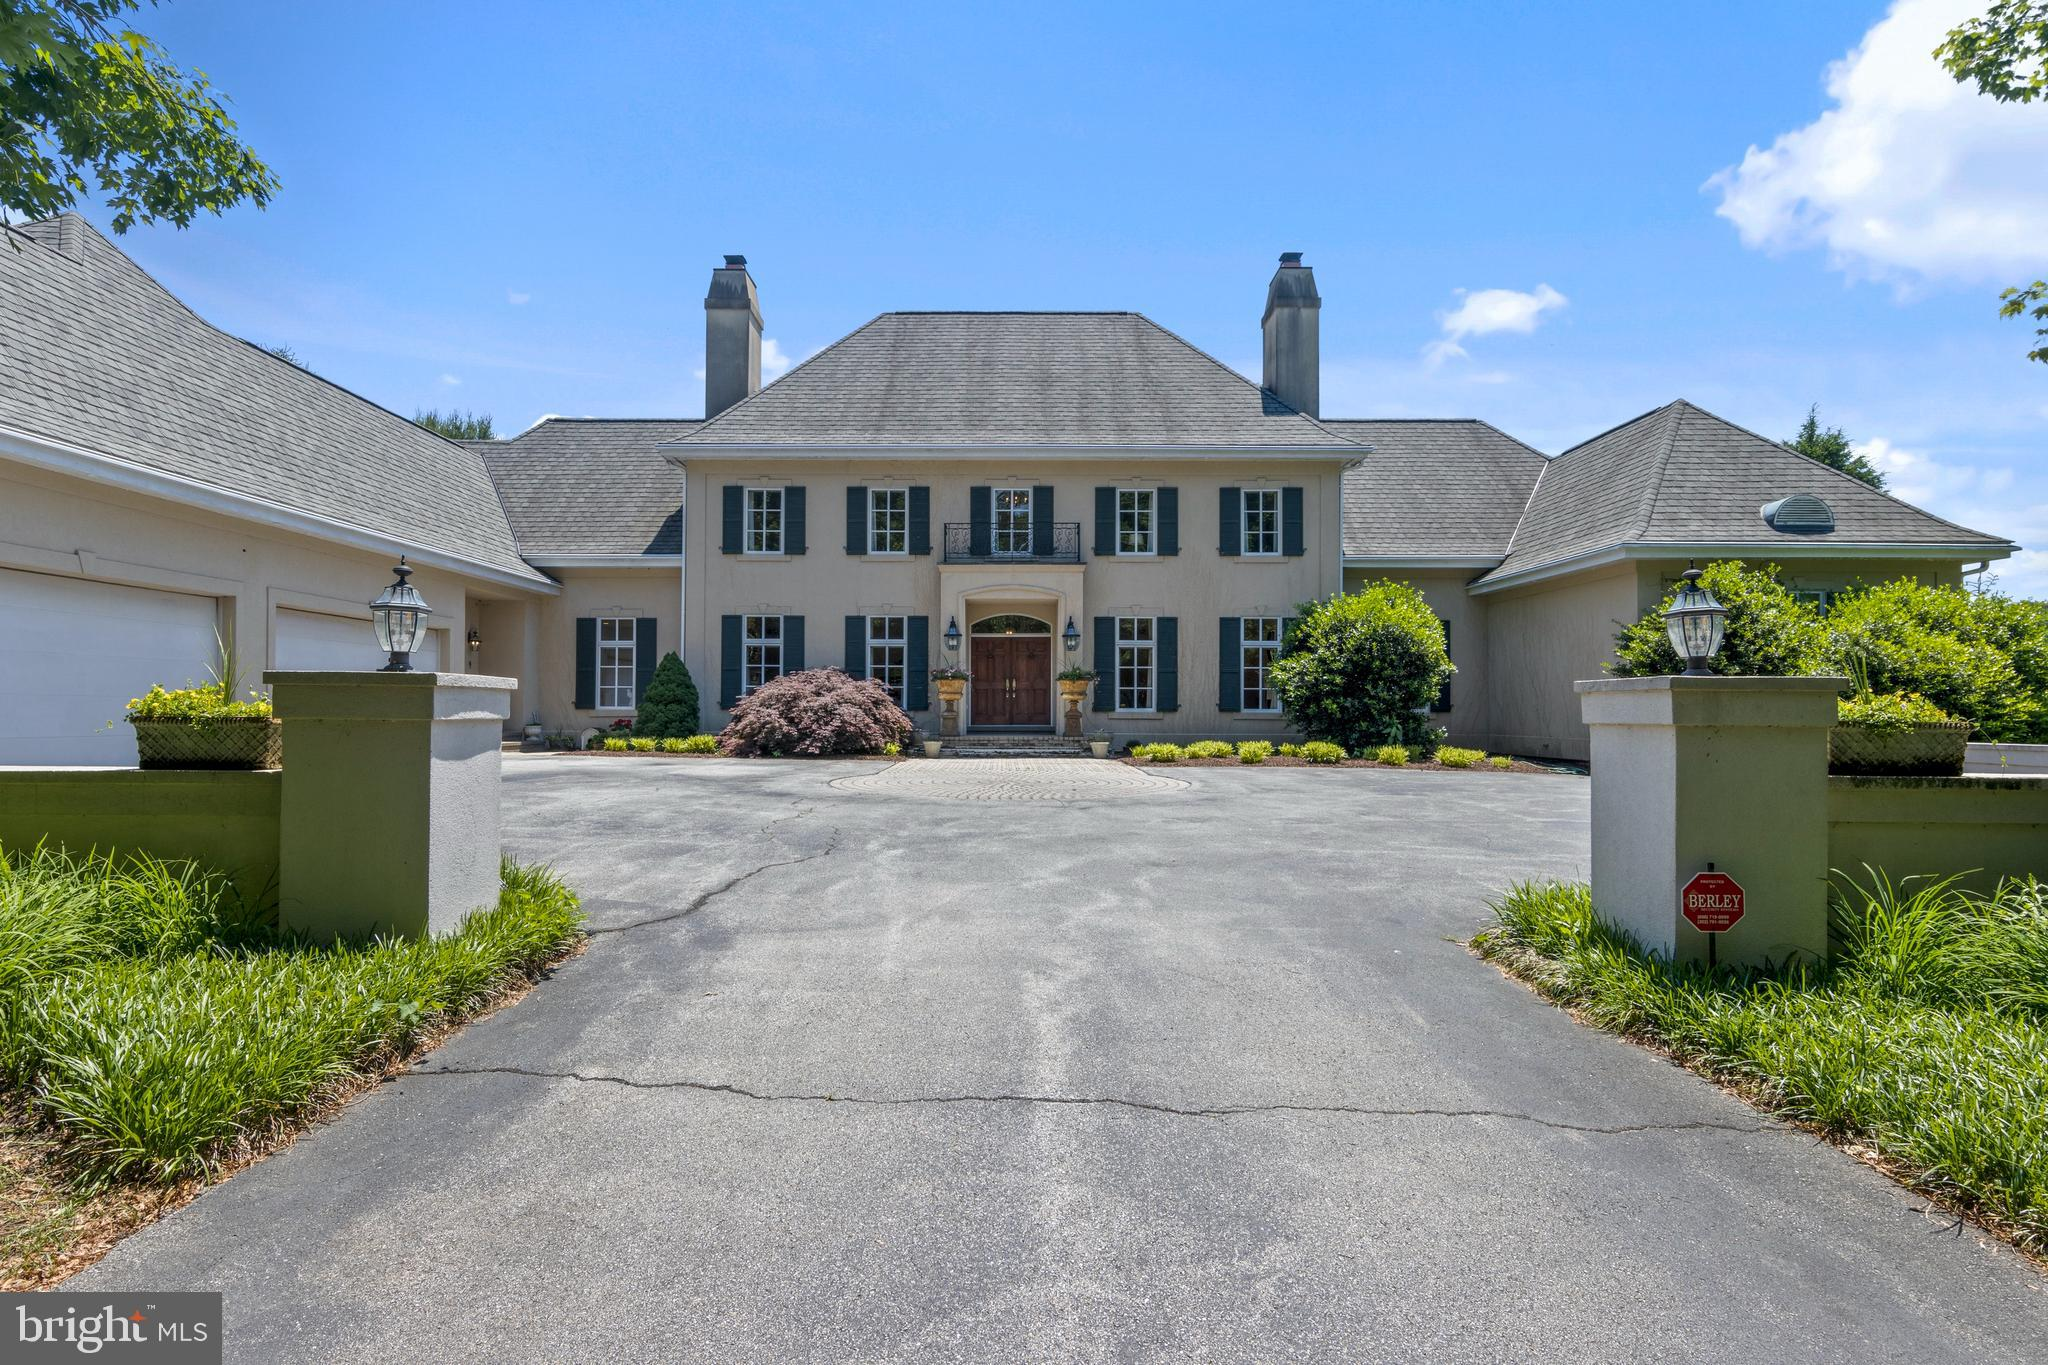 Located in the heart of Chateau Country, a French Provincial masterpiece is offered. Situated on 1.97 verdant acres, Joe Marra, one of Delaware's premier builders designed his personal dream home. The grand property was subsequently upgraded by a new owner. After entering a secluded gated driveway, observe an immense structure boasting a total of 8700 Sqft of living area. Walk through large European inspired doors to enter the expansive foyer, one notices beaming Brazilian Cherry Hardwoods throughout, Trey ceilings and wainscotting. A marble mantle enclosed fireplace provides ambiance when hosting guests in the adjacent formal dining room. Cathedral ceilings await one after a long day easily forgotten when relaxing inside the great room. Abundant natural light surrounds all living areas. A first-floor primary bedroom benefits those seeking main floor living. Connected to the first-floor primary bedroom is a large walk-in closet and professional office. Feeling inspired to prepare chef inspired home meals or hosting? You will easily find the French County kitchen's commercial grade appliances suitable. Venturing off the kitchen a Florida Room creates the perfect area to enjoy prepared hors d'oeuvres. Ascending sweeping staircases, tropical hardwoods cover the entire upper level. On the second floor you find, a full en-suite Princess suite, completed by walk in closet and tiled bathroom. Each bedroom benefits from attached en suite bathrooms. Above the garage is a hobby/playroom. Descending down to the lower level you'll find a complete wet bar, upgraded Movie Room & large windows offering fresh air and light inside a gym area. Only minutes to Downtown Wilmington made famous by Delaware's own Joe Biden. Quick access to major routes of transportation leading to Philly,NYC, DC or beyond.